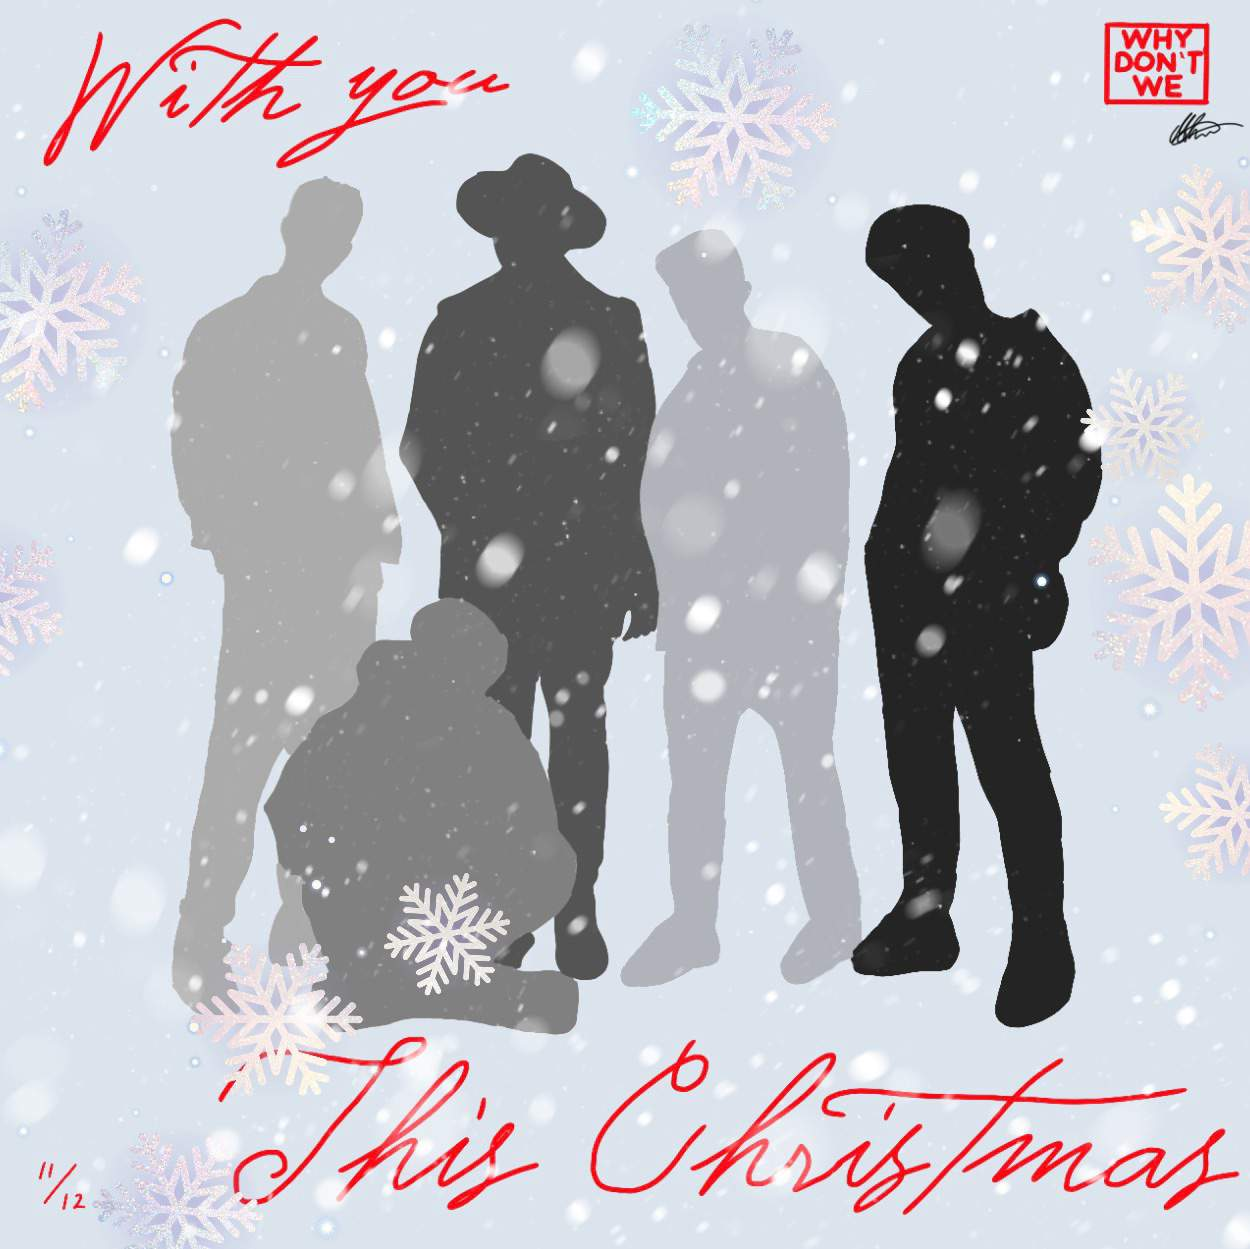 With You This Christmas | Why Don't We Amino